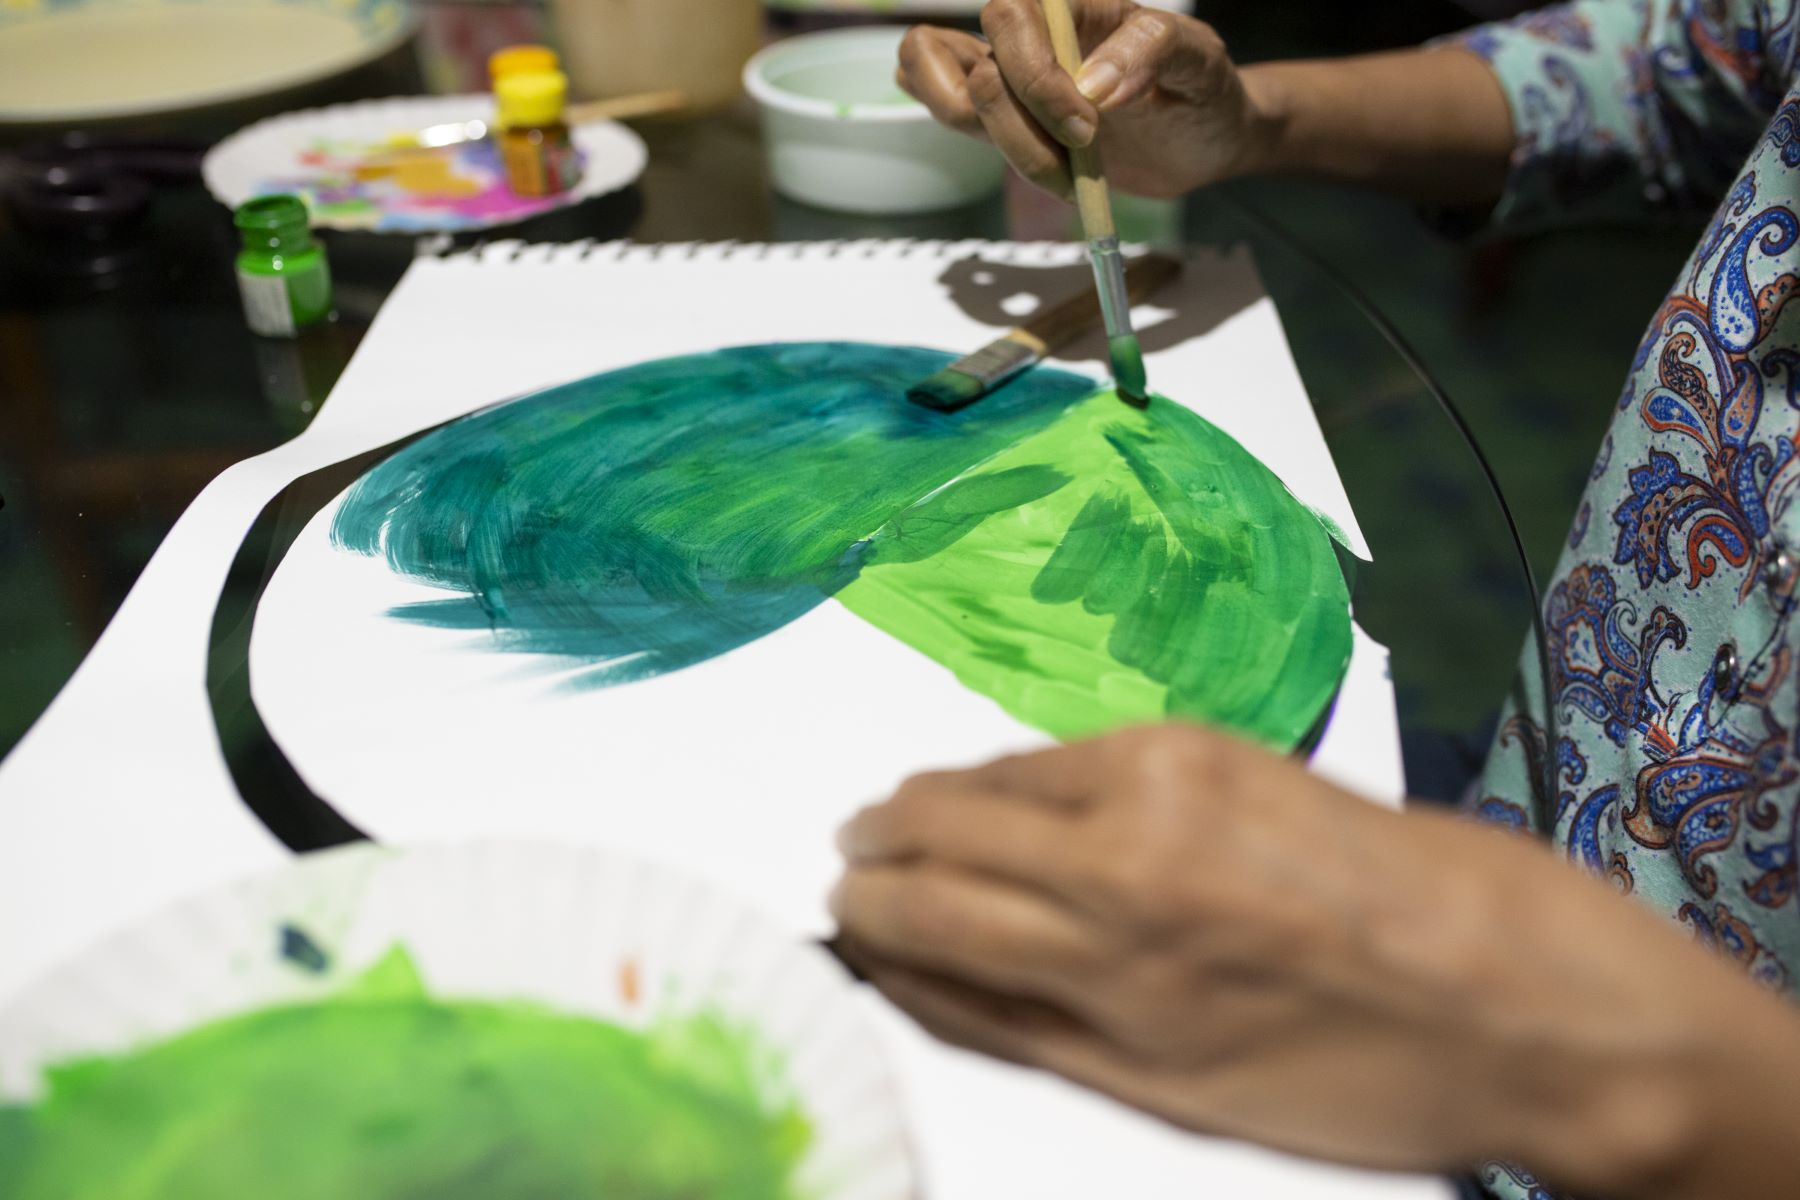 Mala painting along with Rishi during the art class